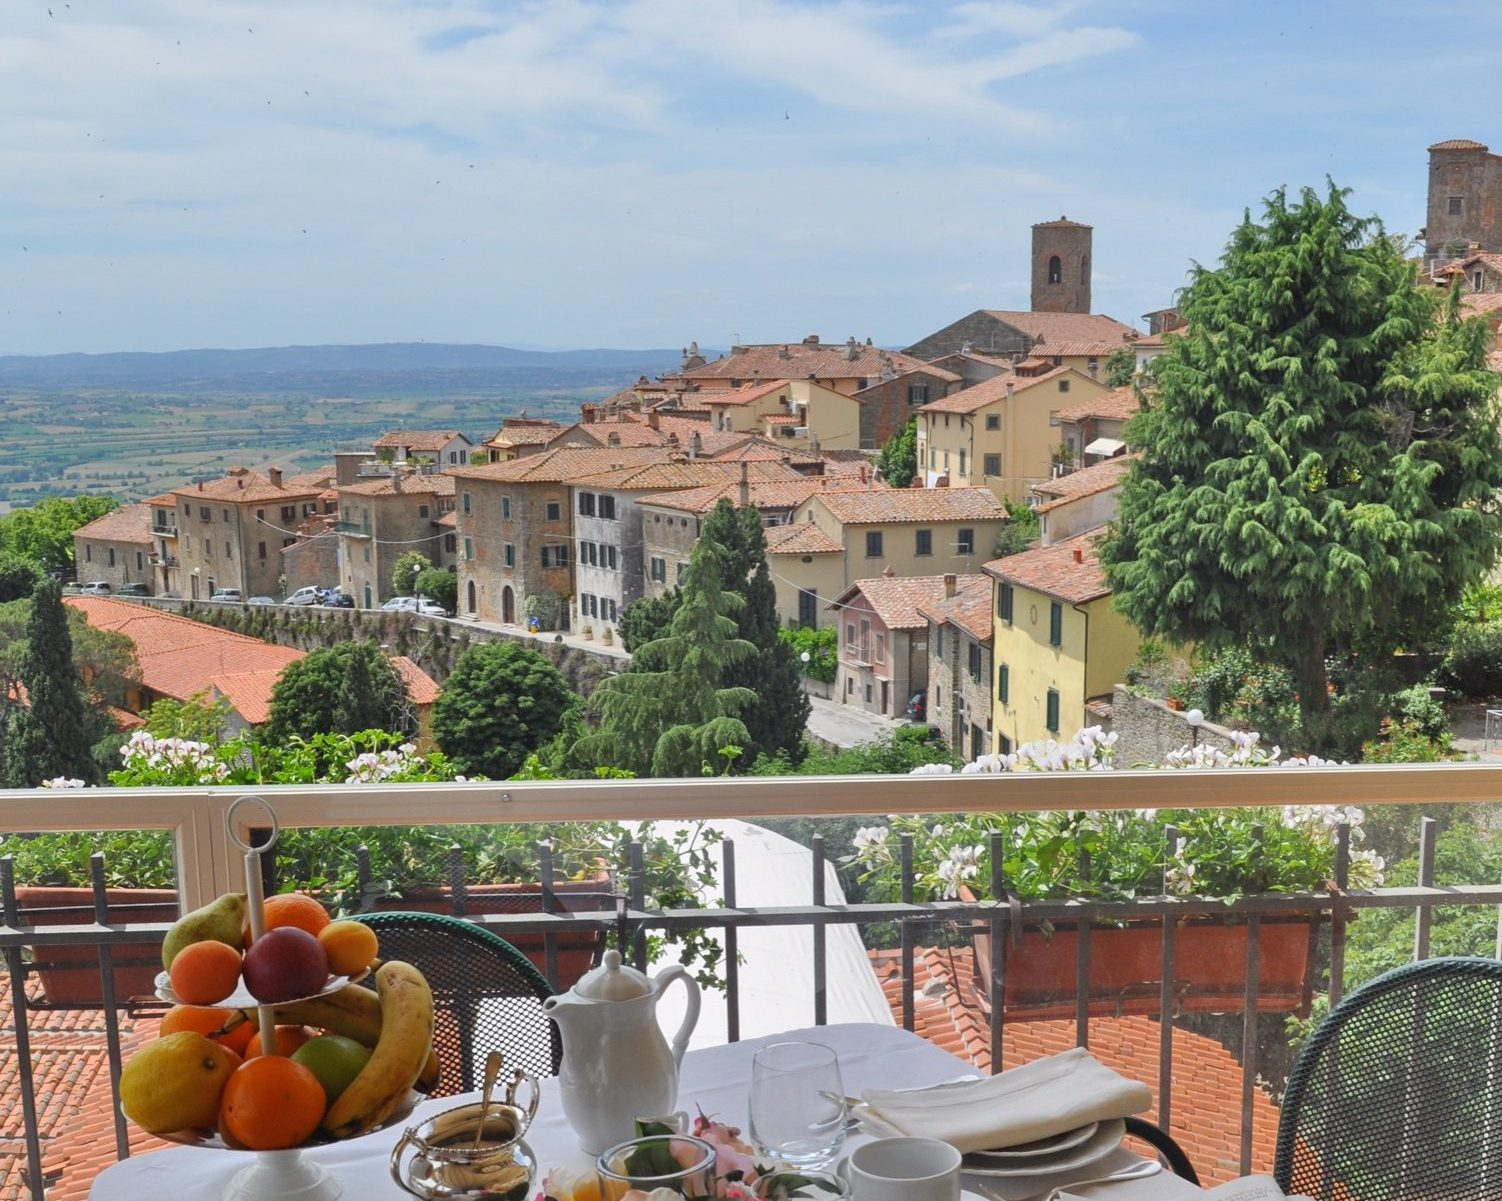 Cortona photography course hotel